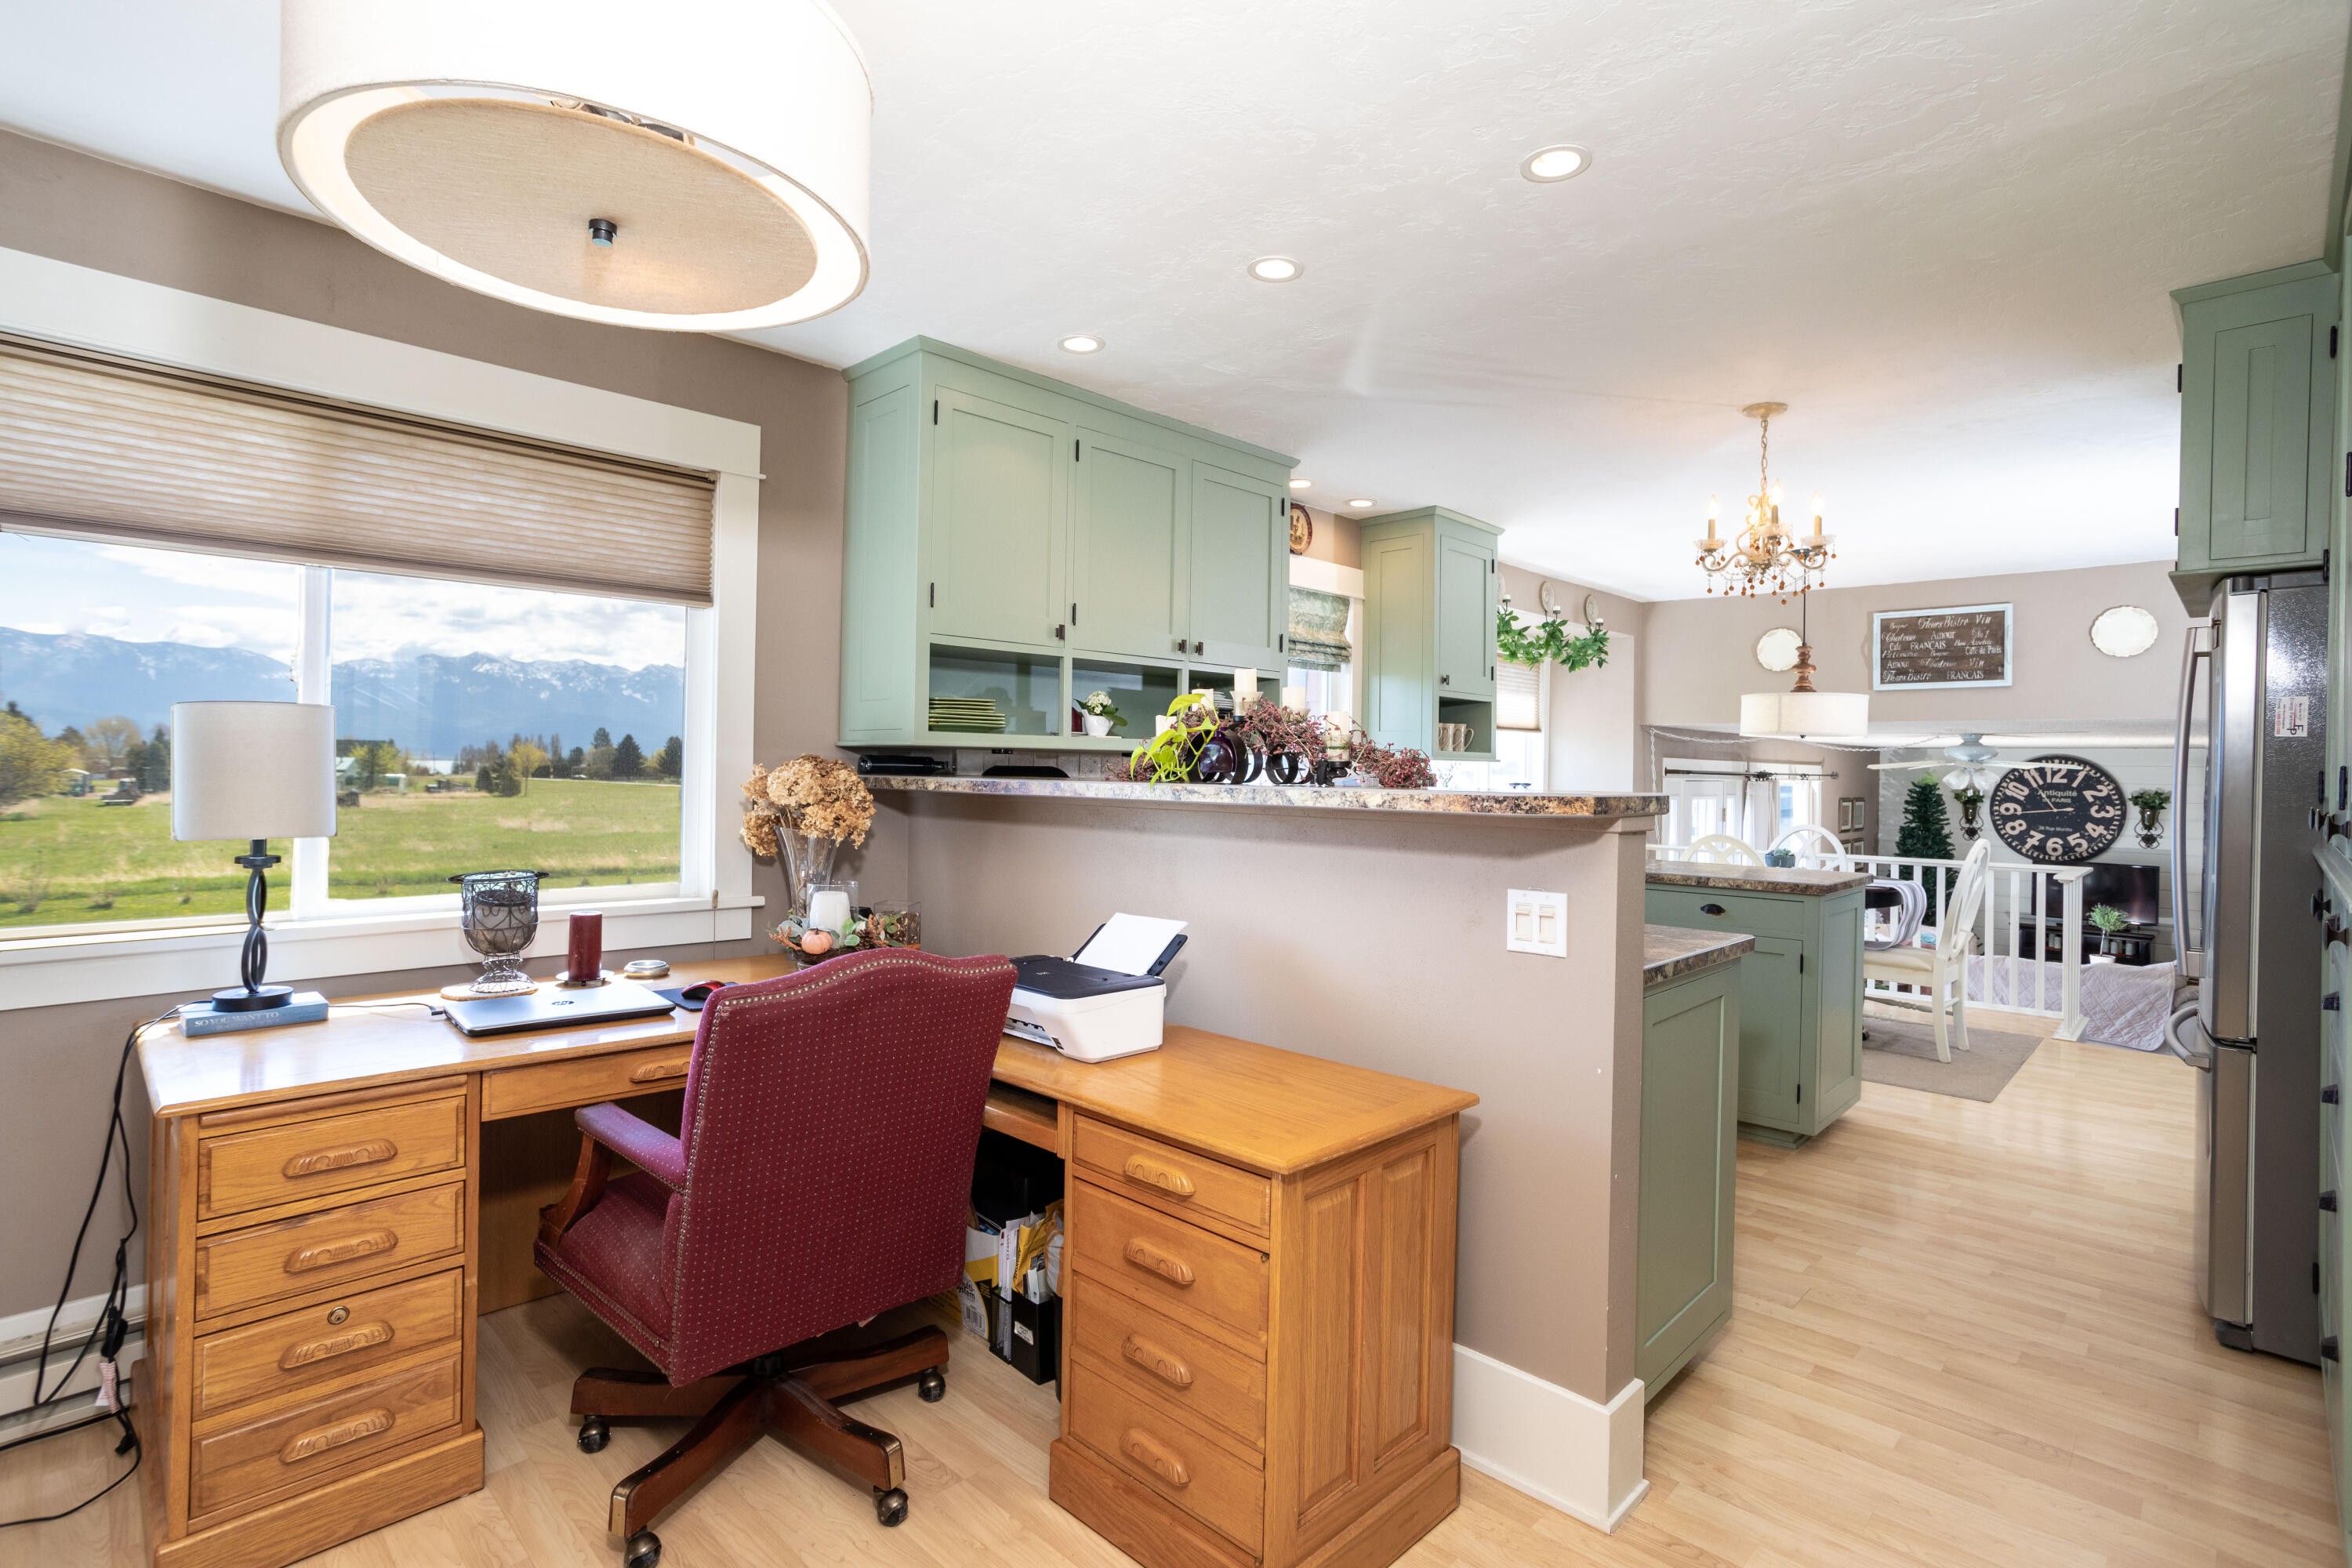 Kitchen to Formal Dining or Office Space